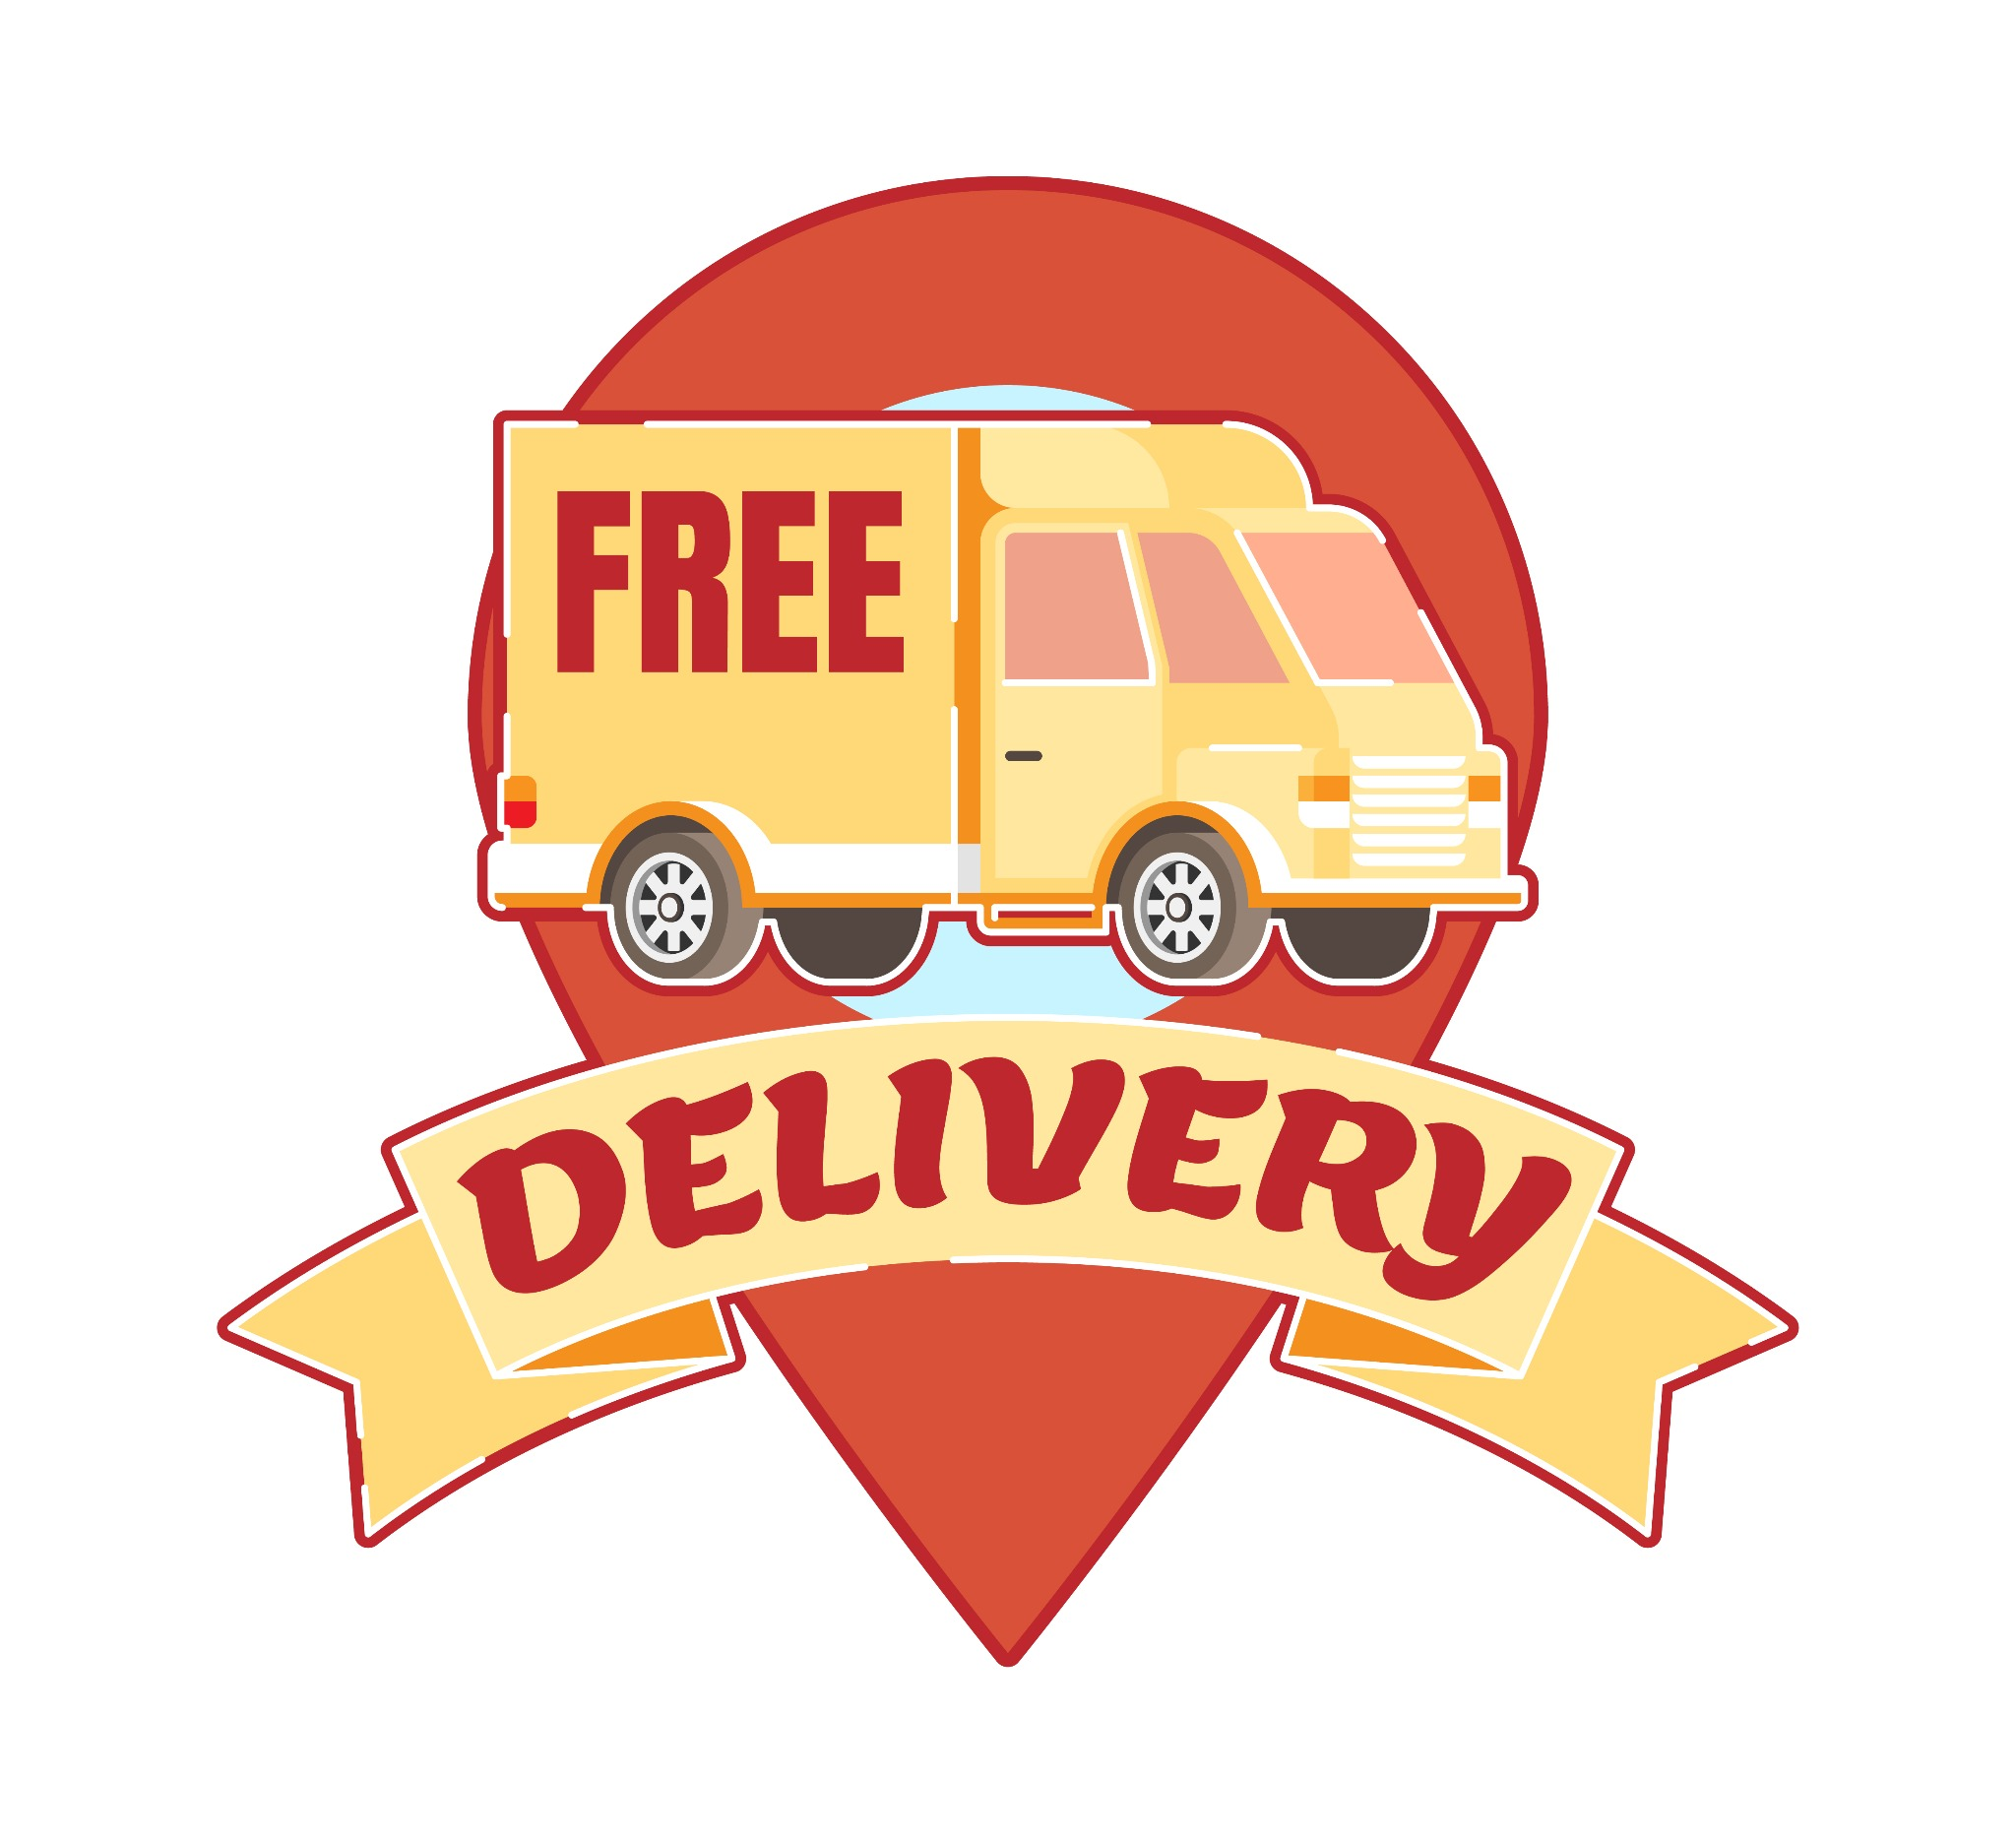 Free delivery sign vector illustration